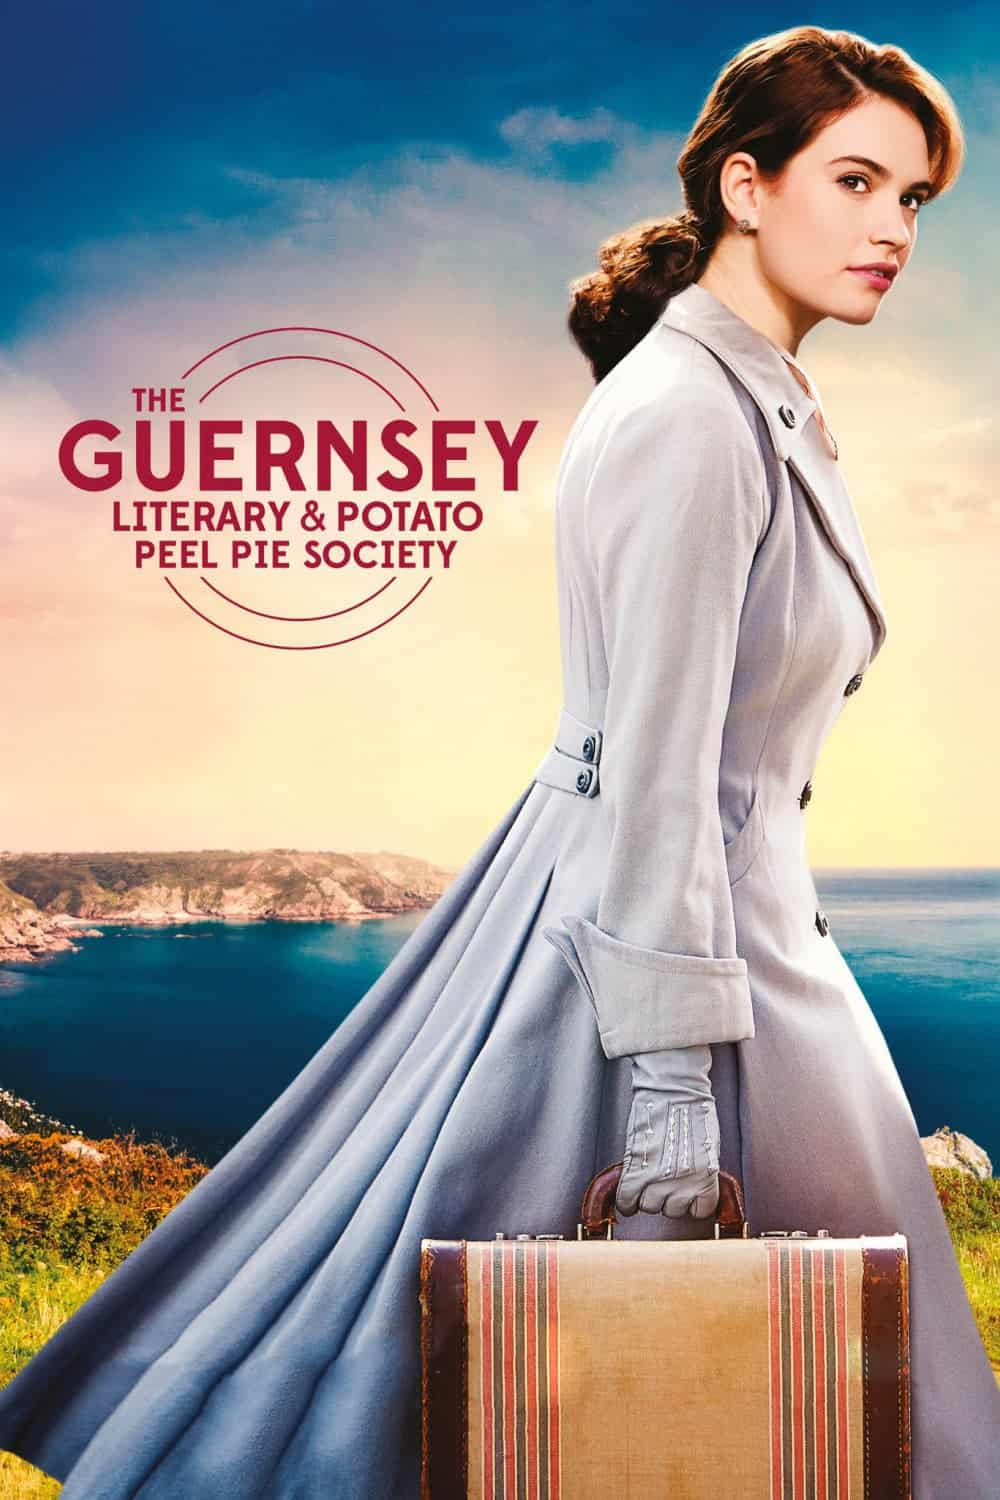 The Guernsey Literary and Potato Peel Pie Society, 2018